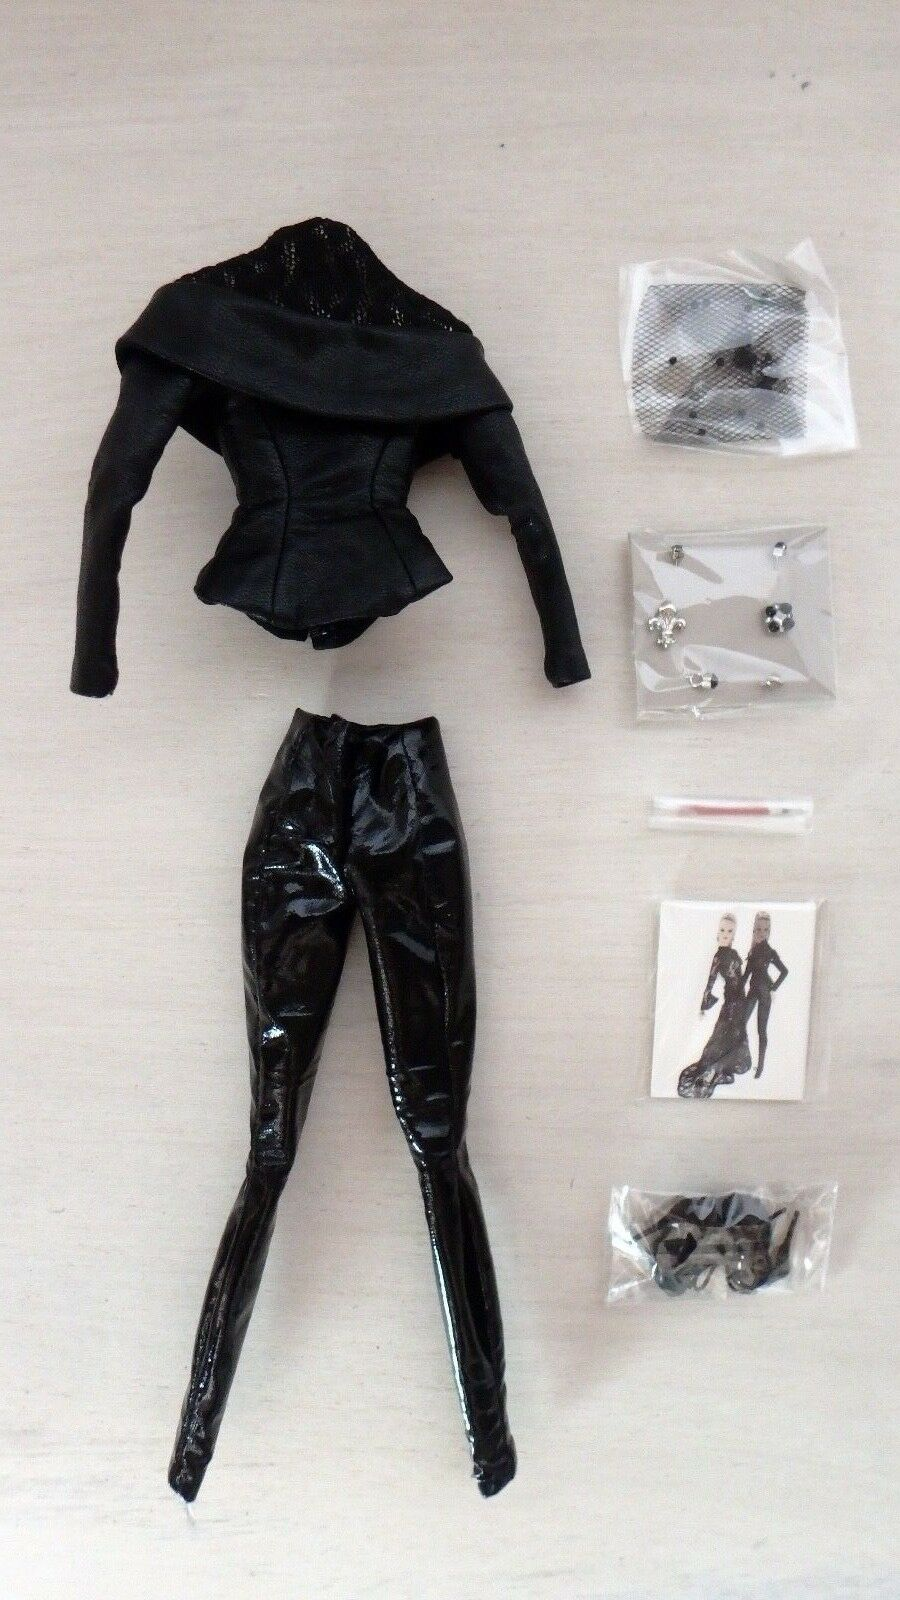 Fashion Royalty Agness Von Weiss Giselle Diefendorf Sister Moguls Outfit Only